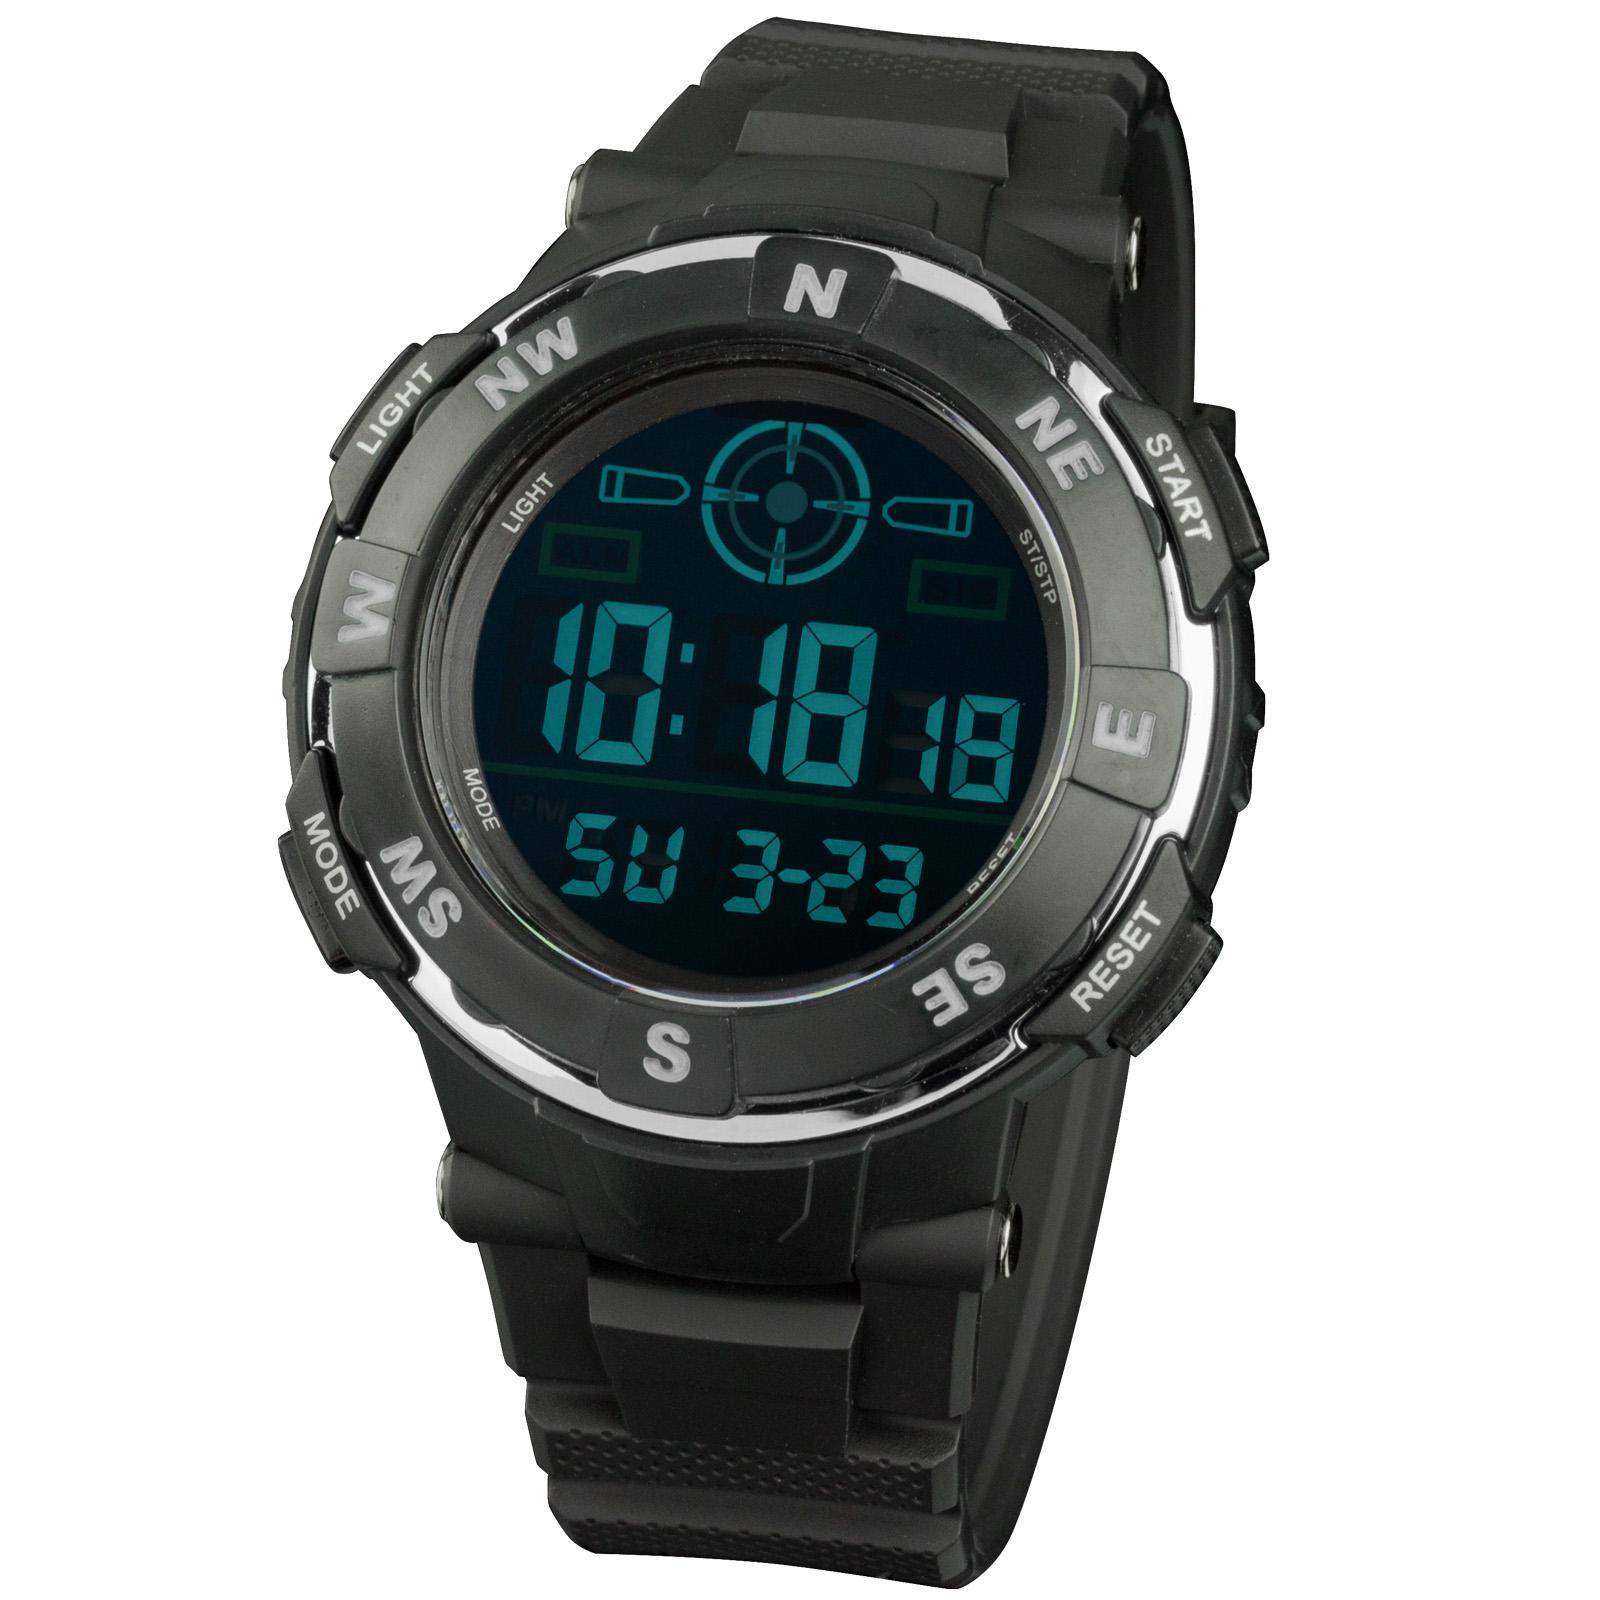 b44cb99b1 Infantry Philippines - Infantry Watches for sale - prices   reviews ...